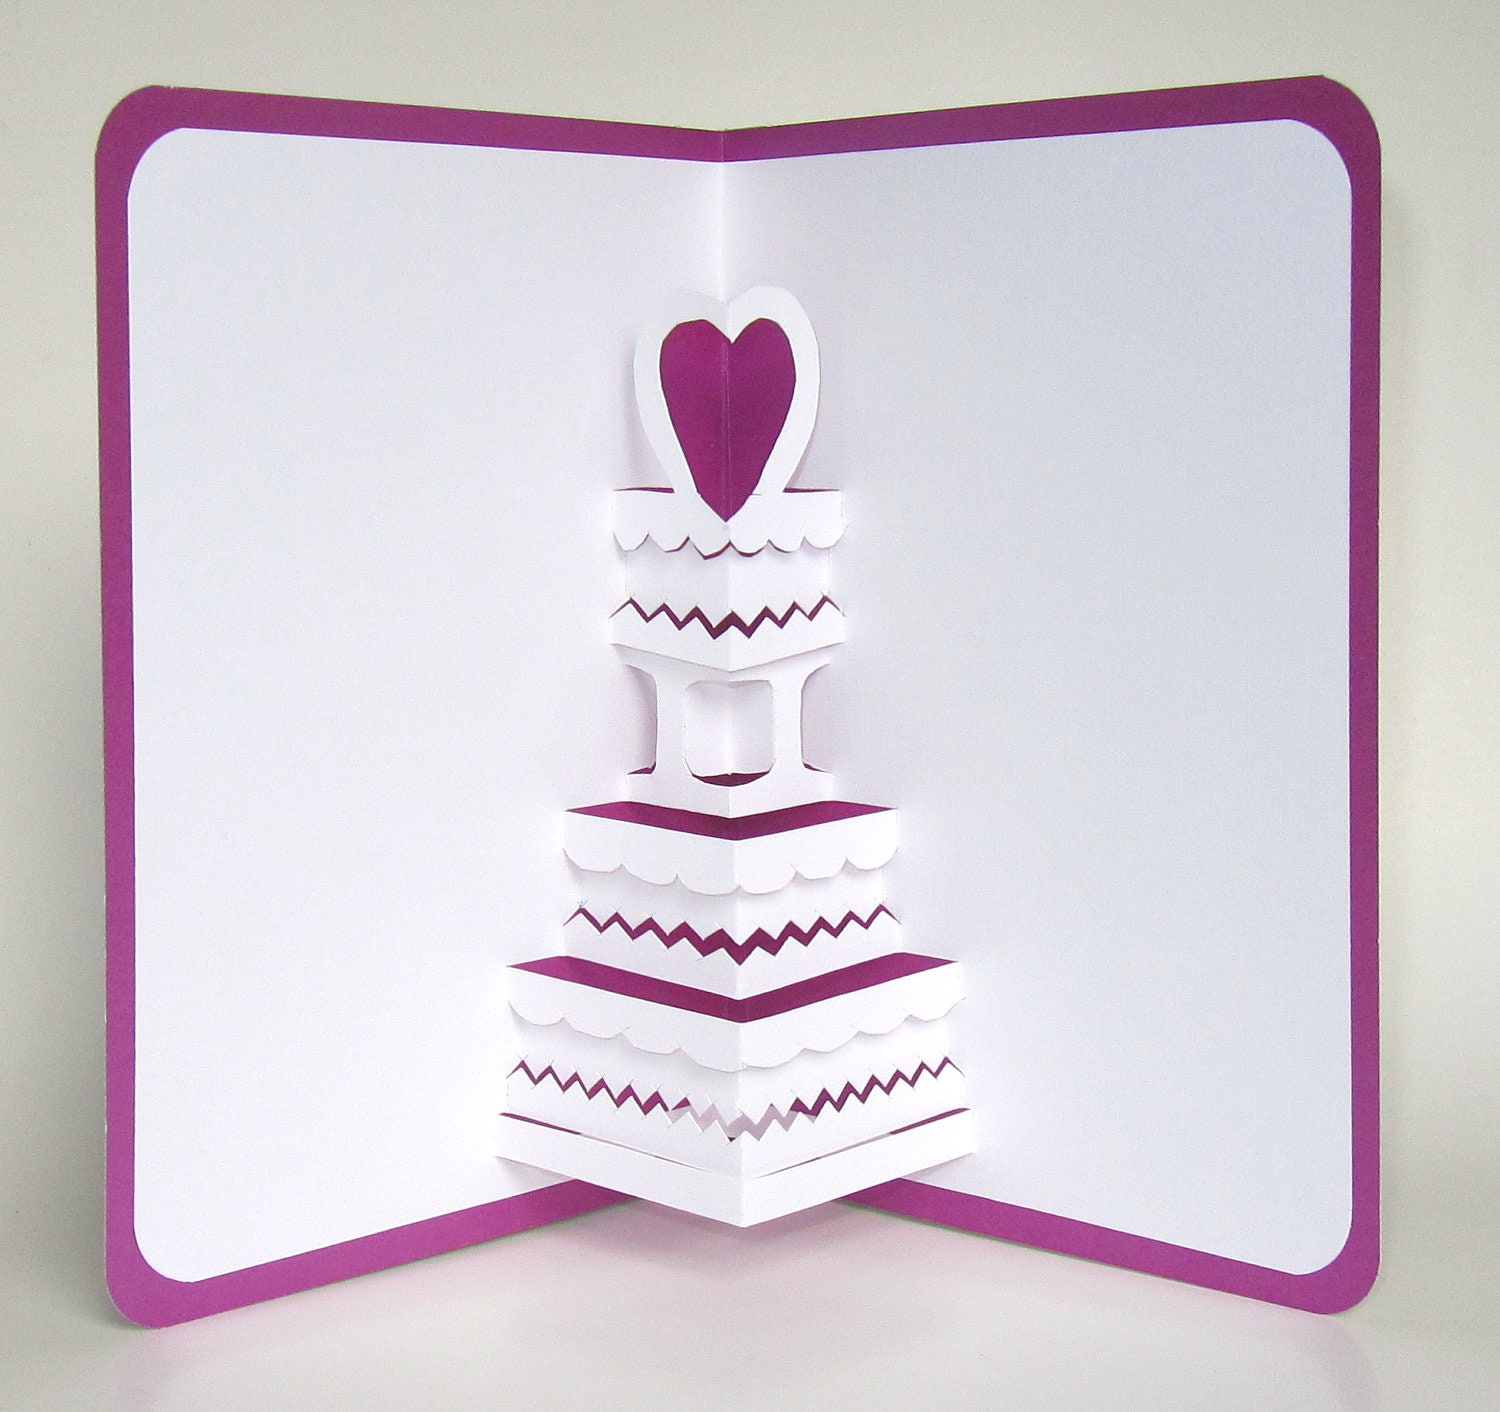 SAVE THE DATE Wedding Cake 3D Pop Up Greeting Card Valentines – Birthday Cake Pop Up Card Template